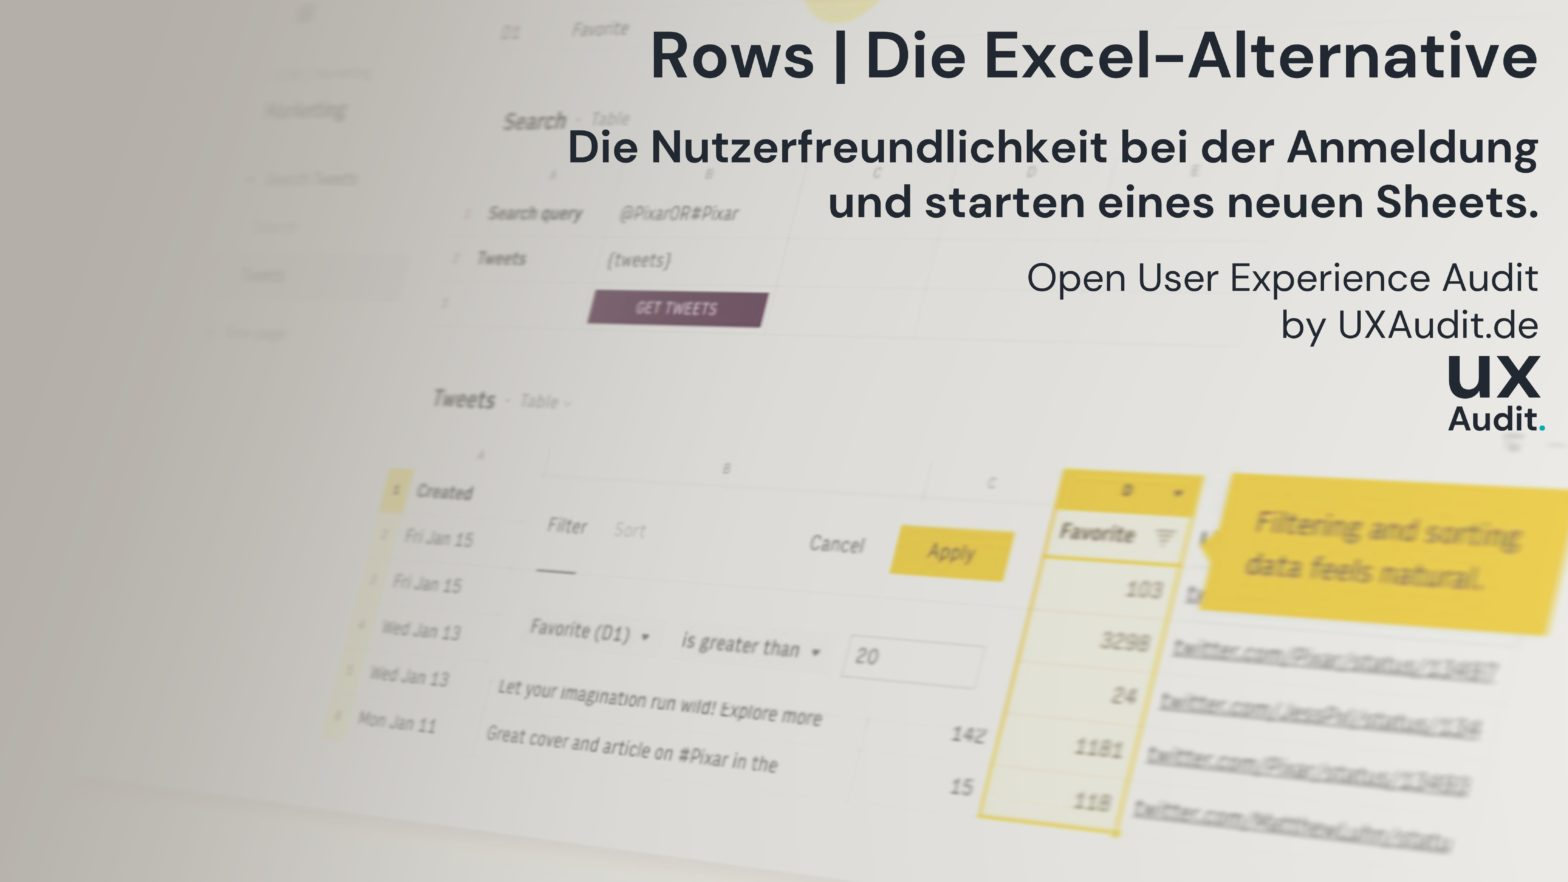 open user experience audit rows